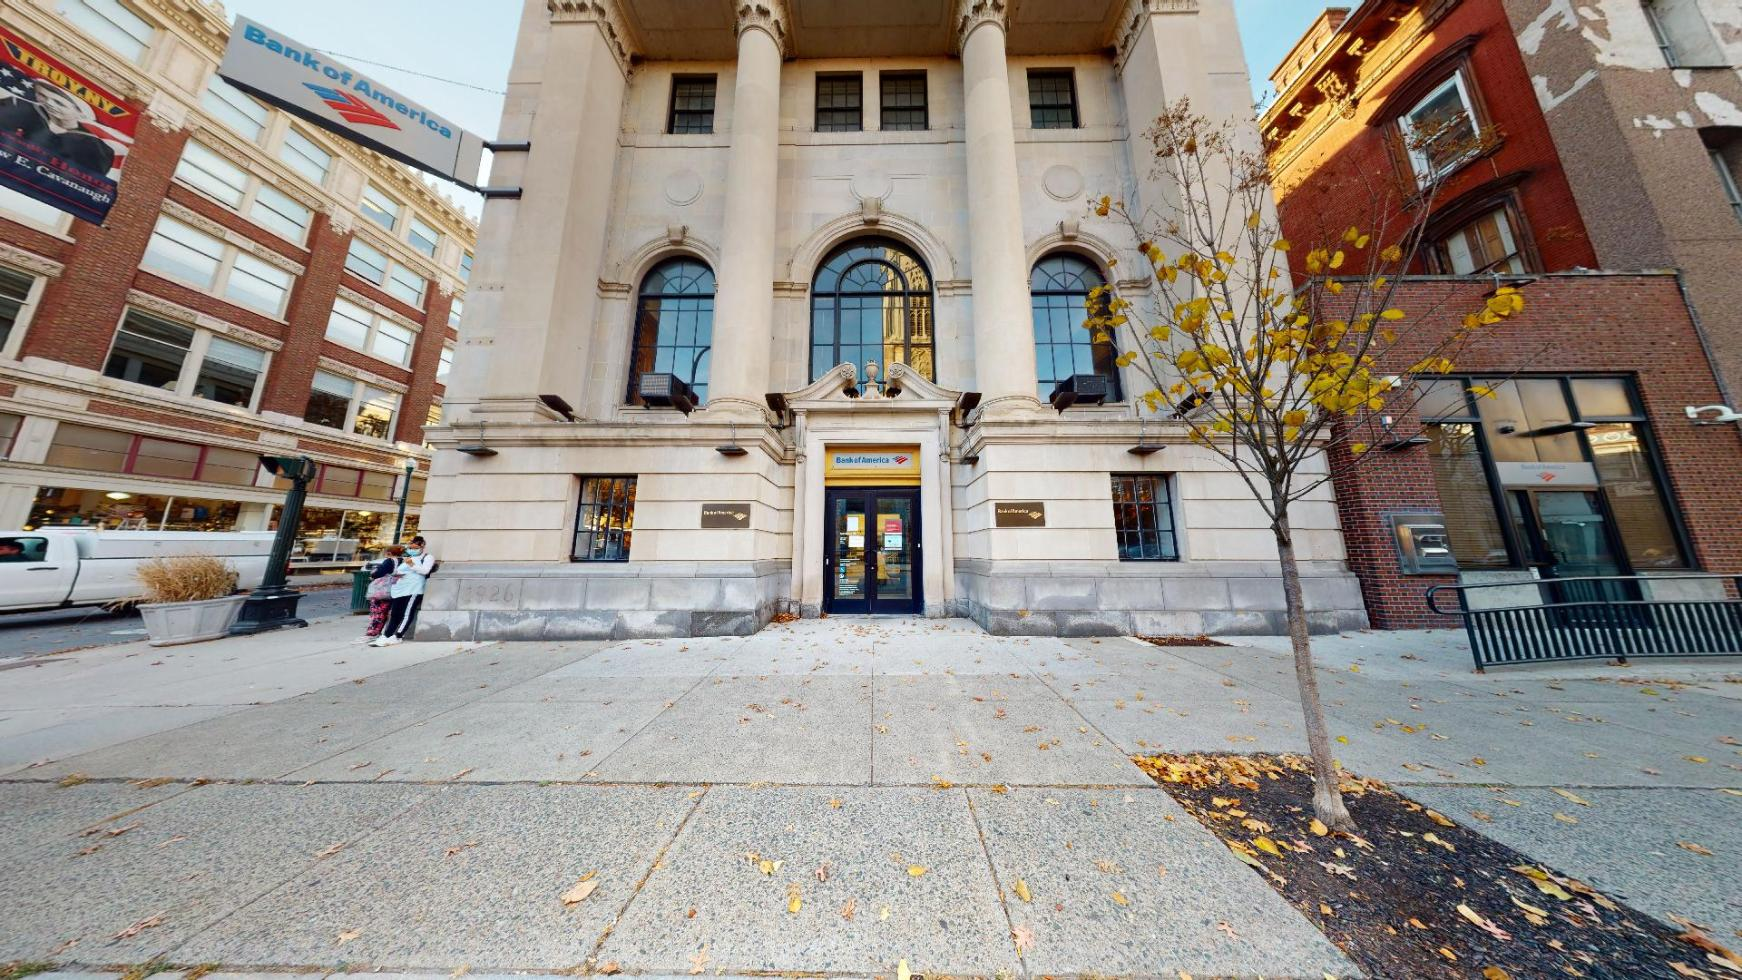 Bank of America financial center with walk-up ATM | 59 3rd St, Troy, NY 12180